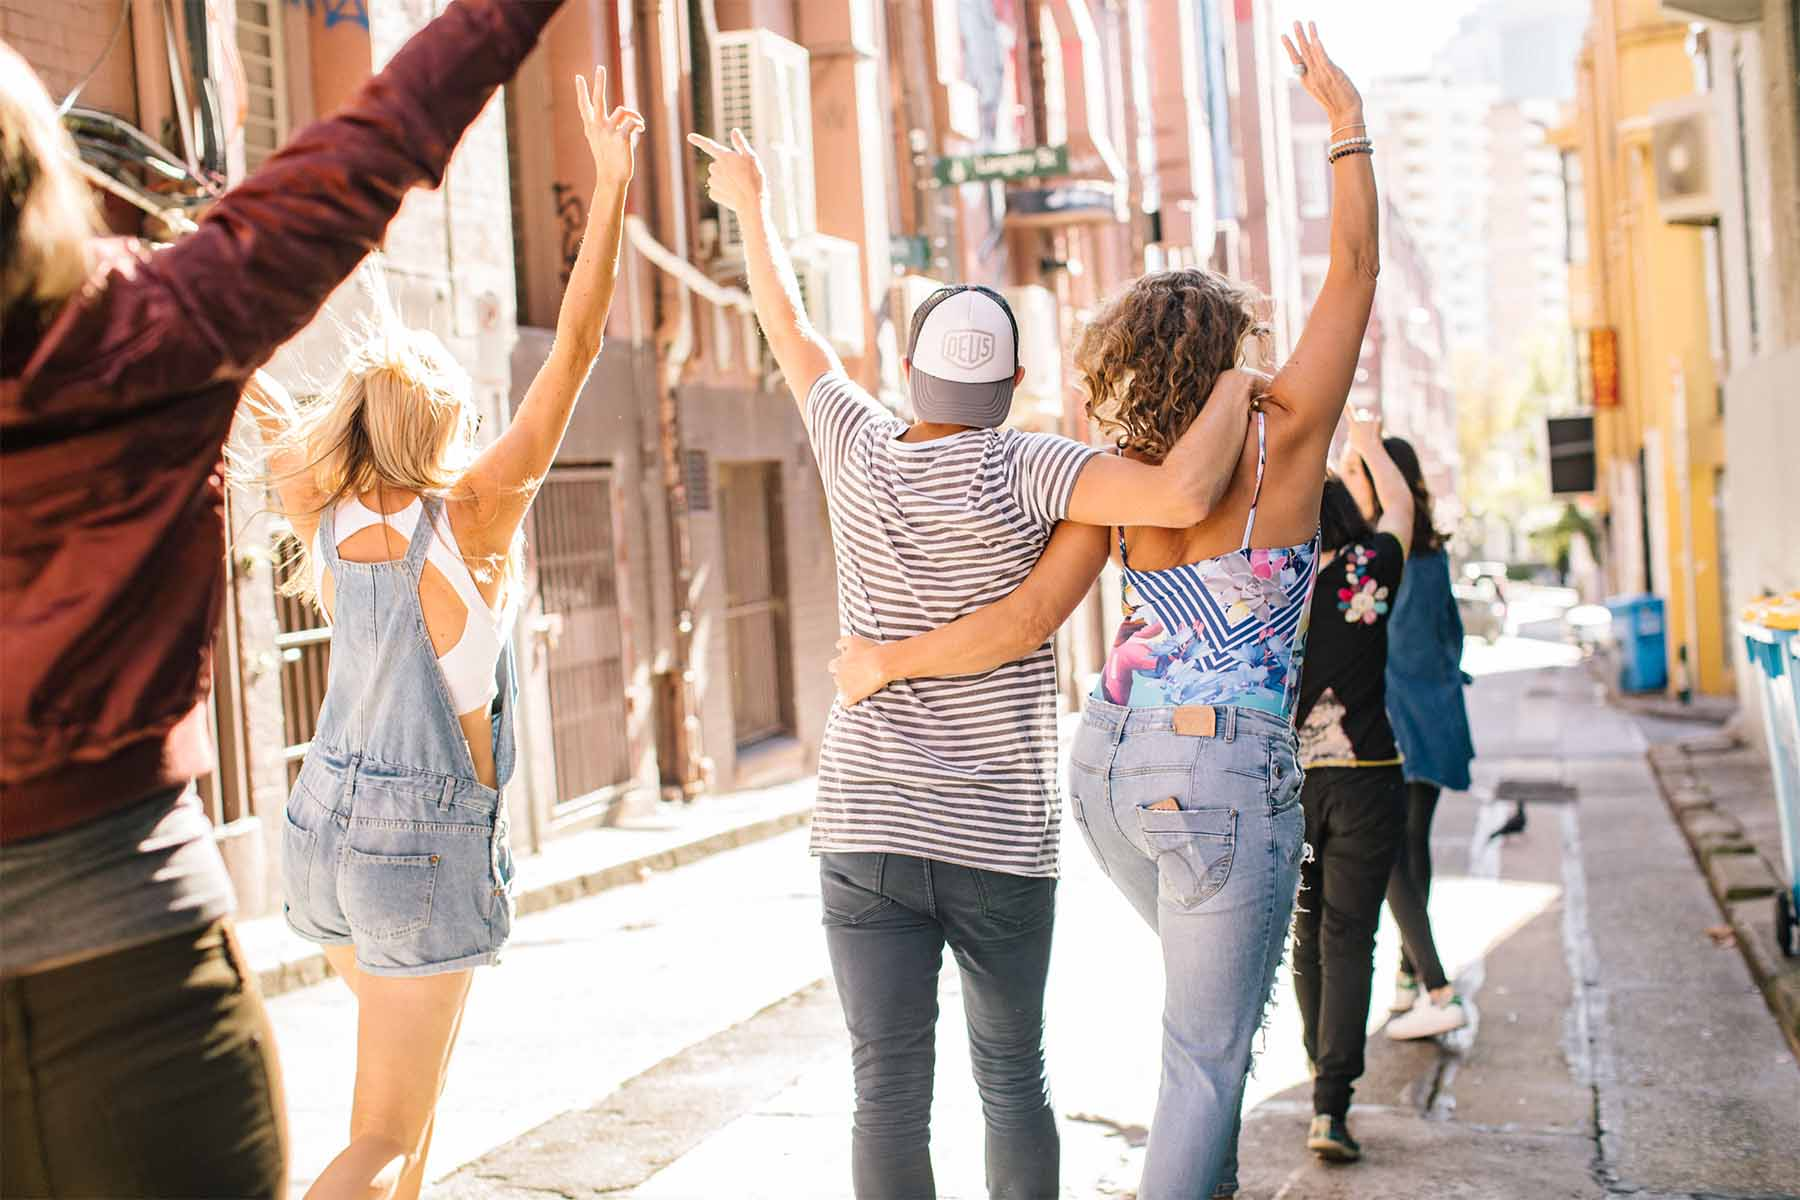 A Group of people are happilly skipping down a backstreet in Sydney for a social media photo shoot